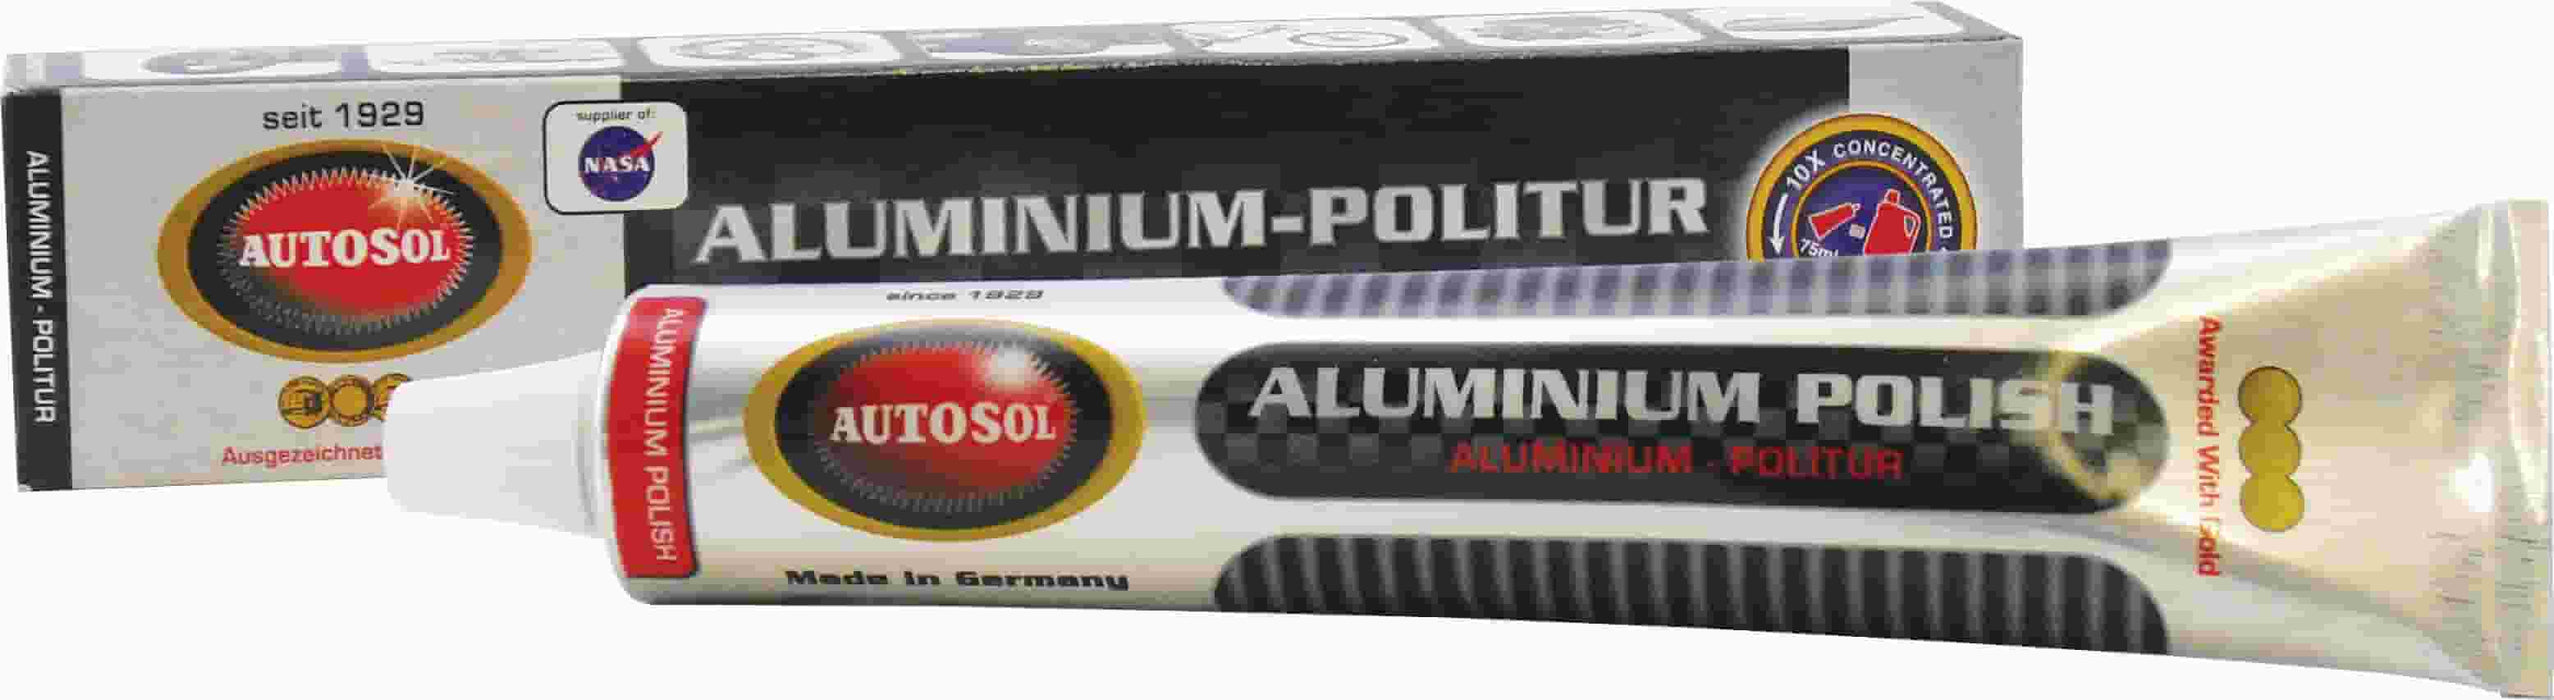 Autosol Aluminium Polish & Cleaner | 75ml Tube - JAR UK Industries